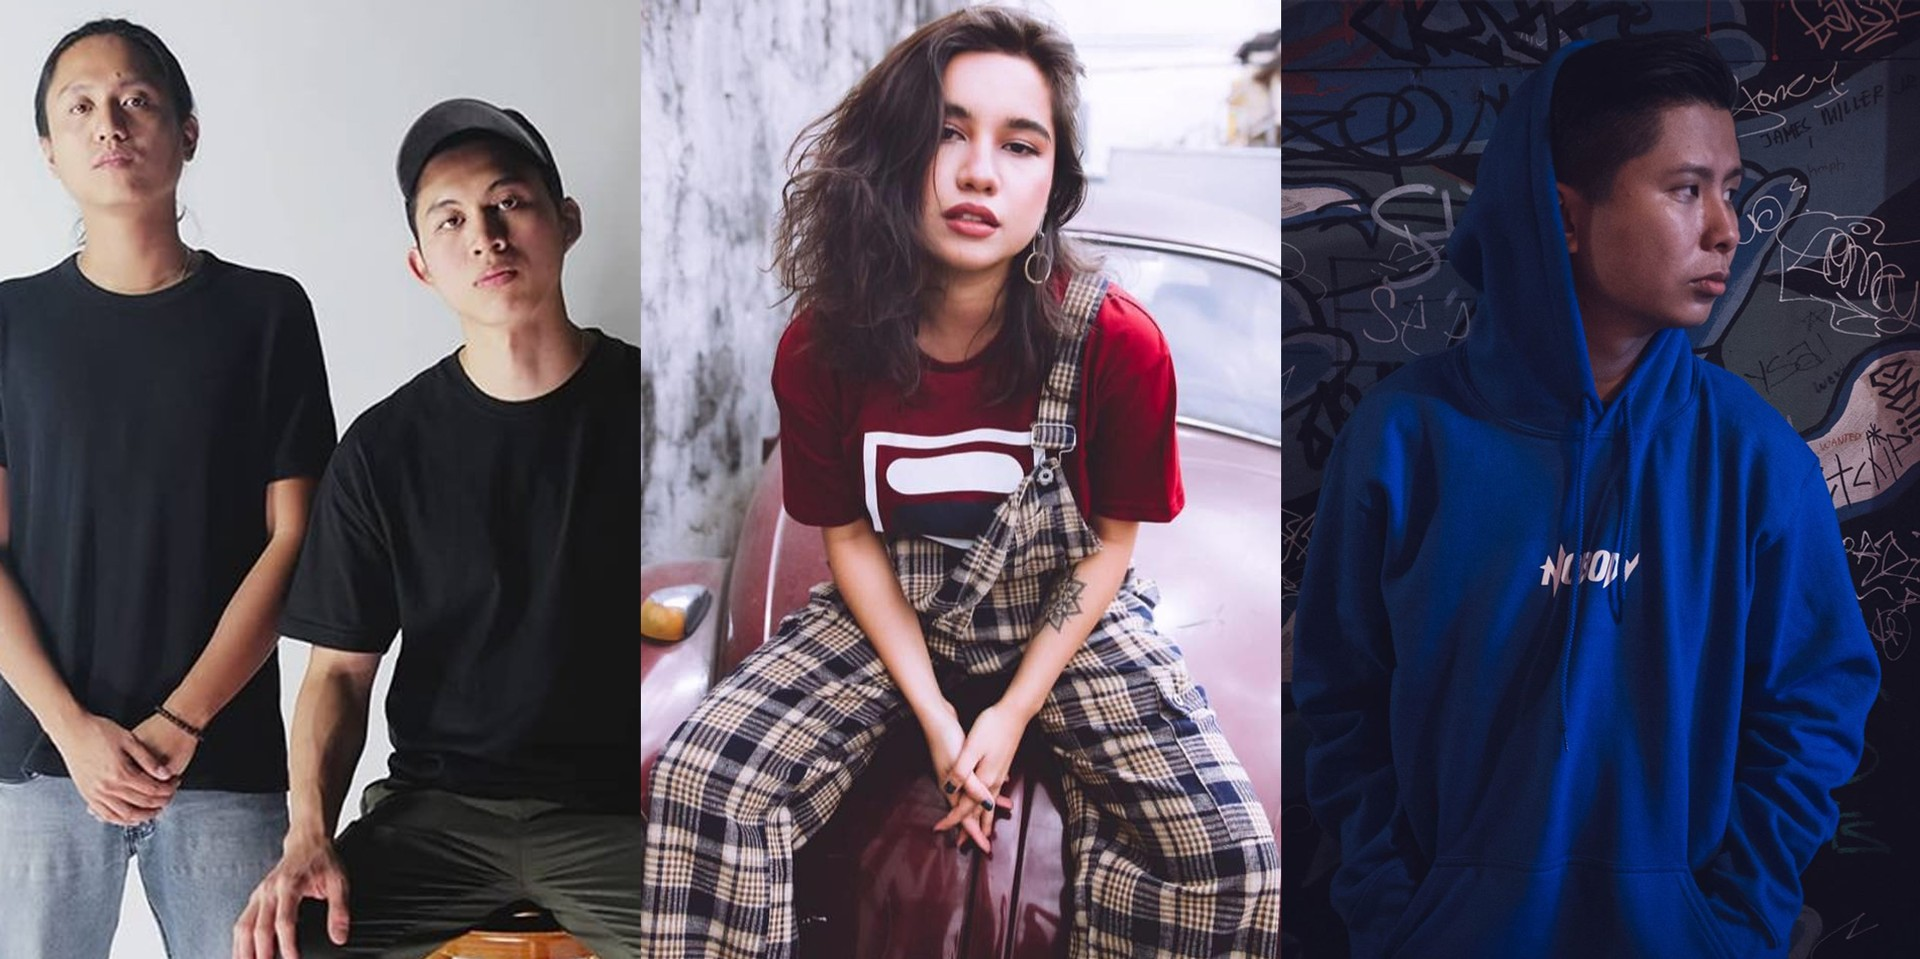 Dante & Amigo, Butta B, Six the Northstar, and more to perform with Logiclub in Bacolod for Masskara Weekend